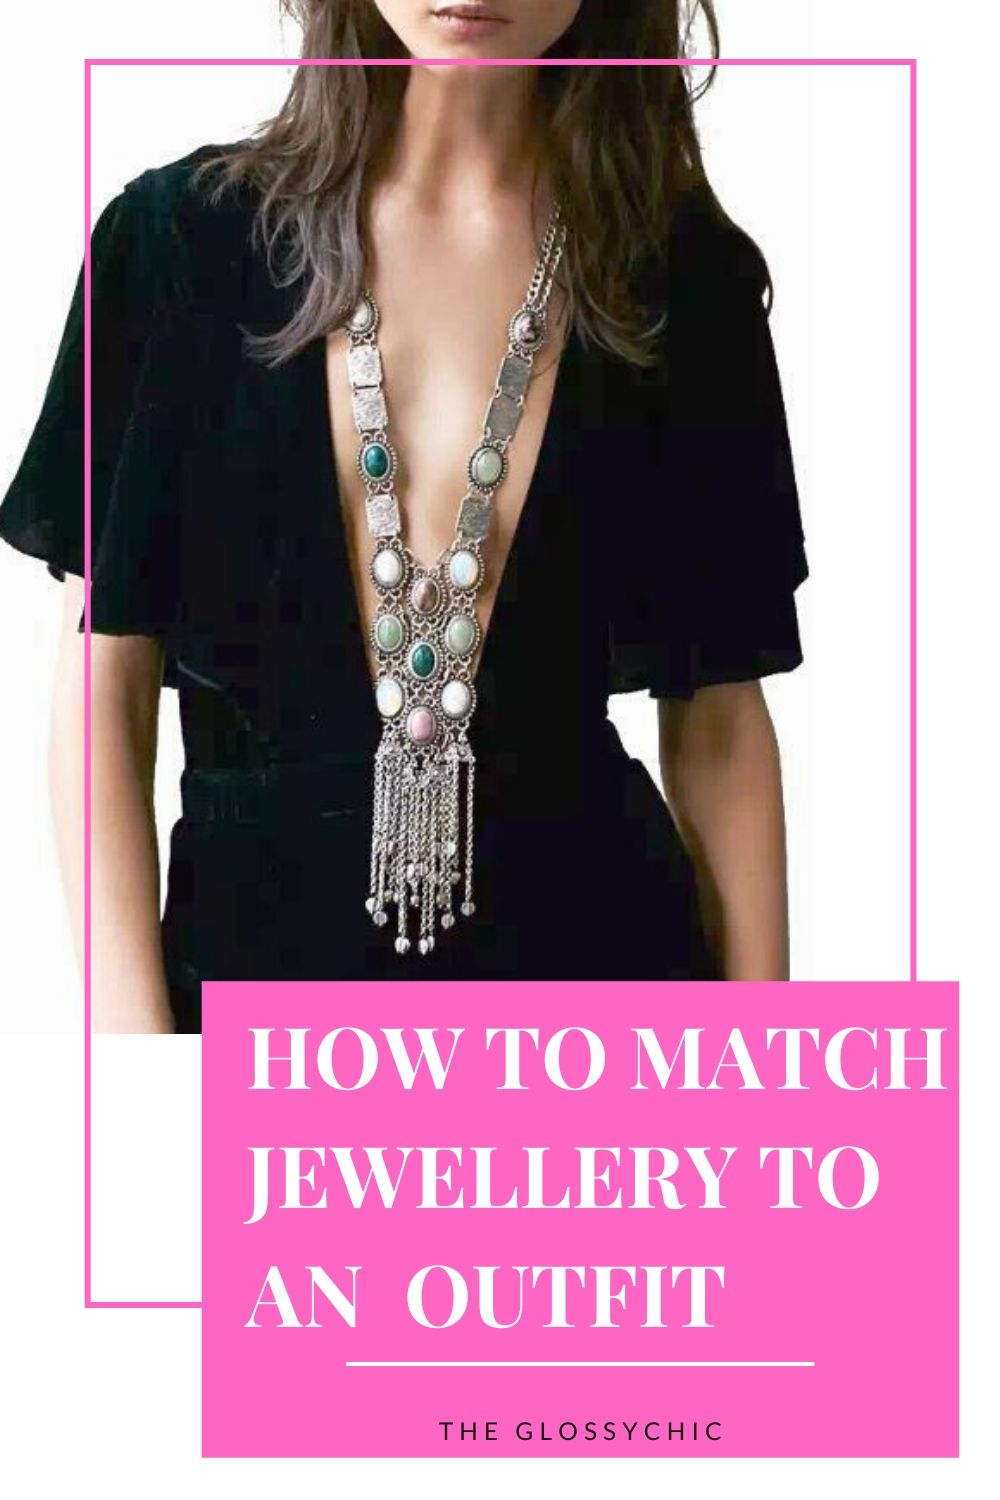 How to match jewellery to an outfit